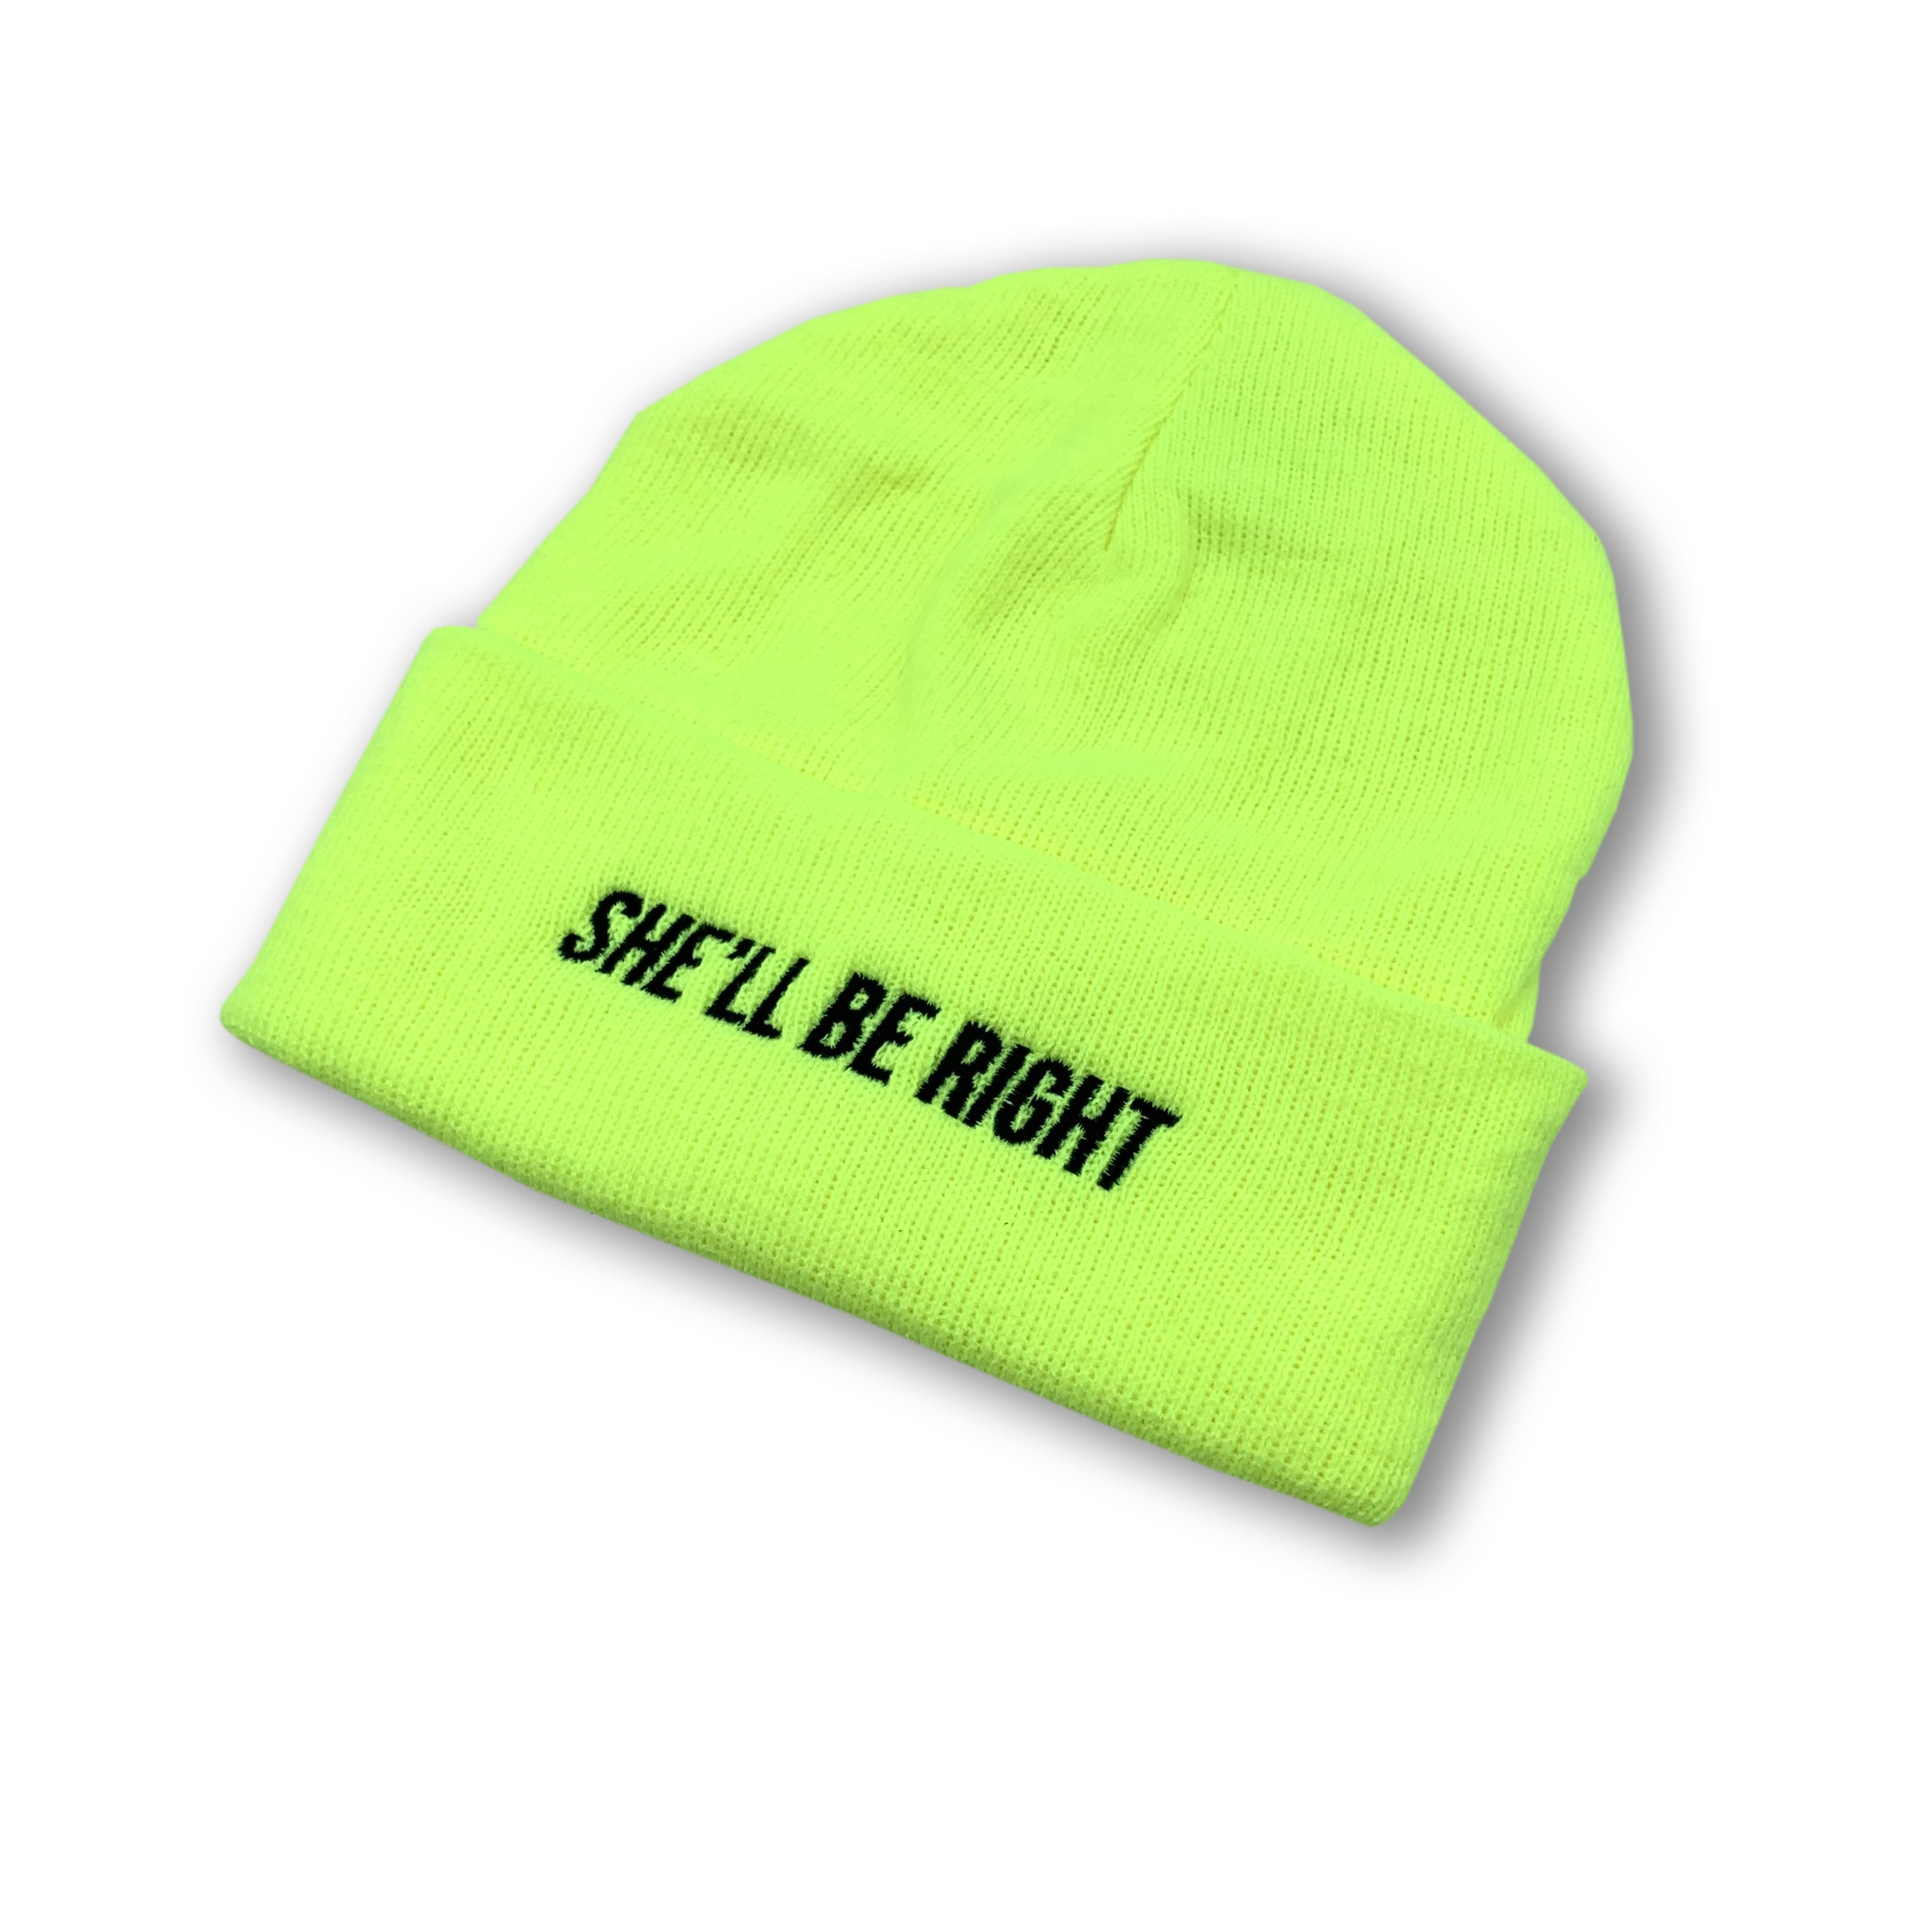 LIME GREEN HI VIS SHE'LL BE RIGHT BEANIE